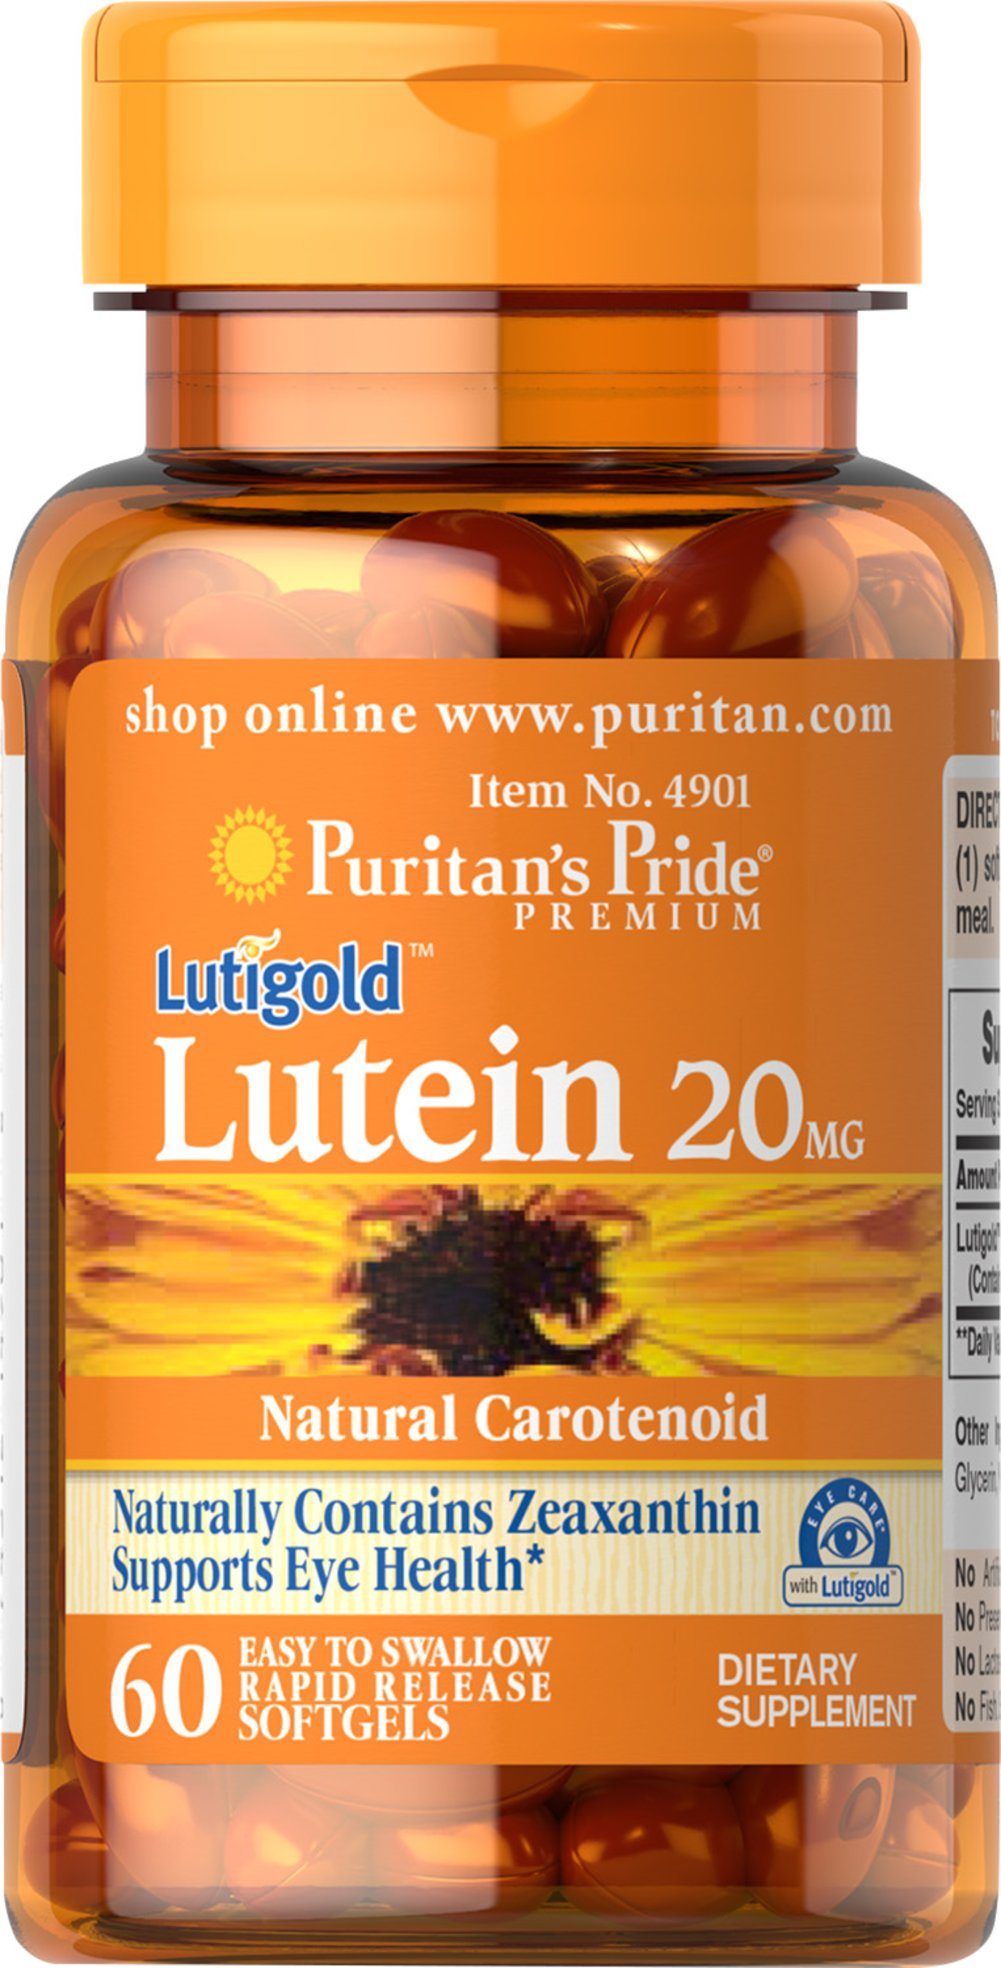 Lutein 20 mg with Zeaxanthin  60 Softgels 20 mg $8.49